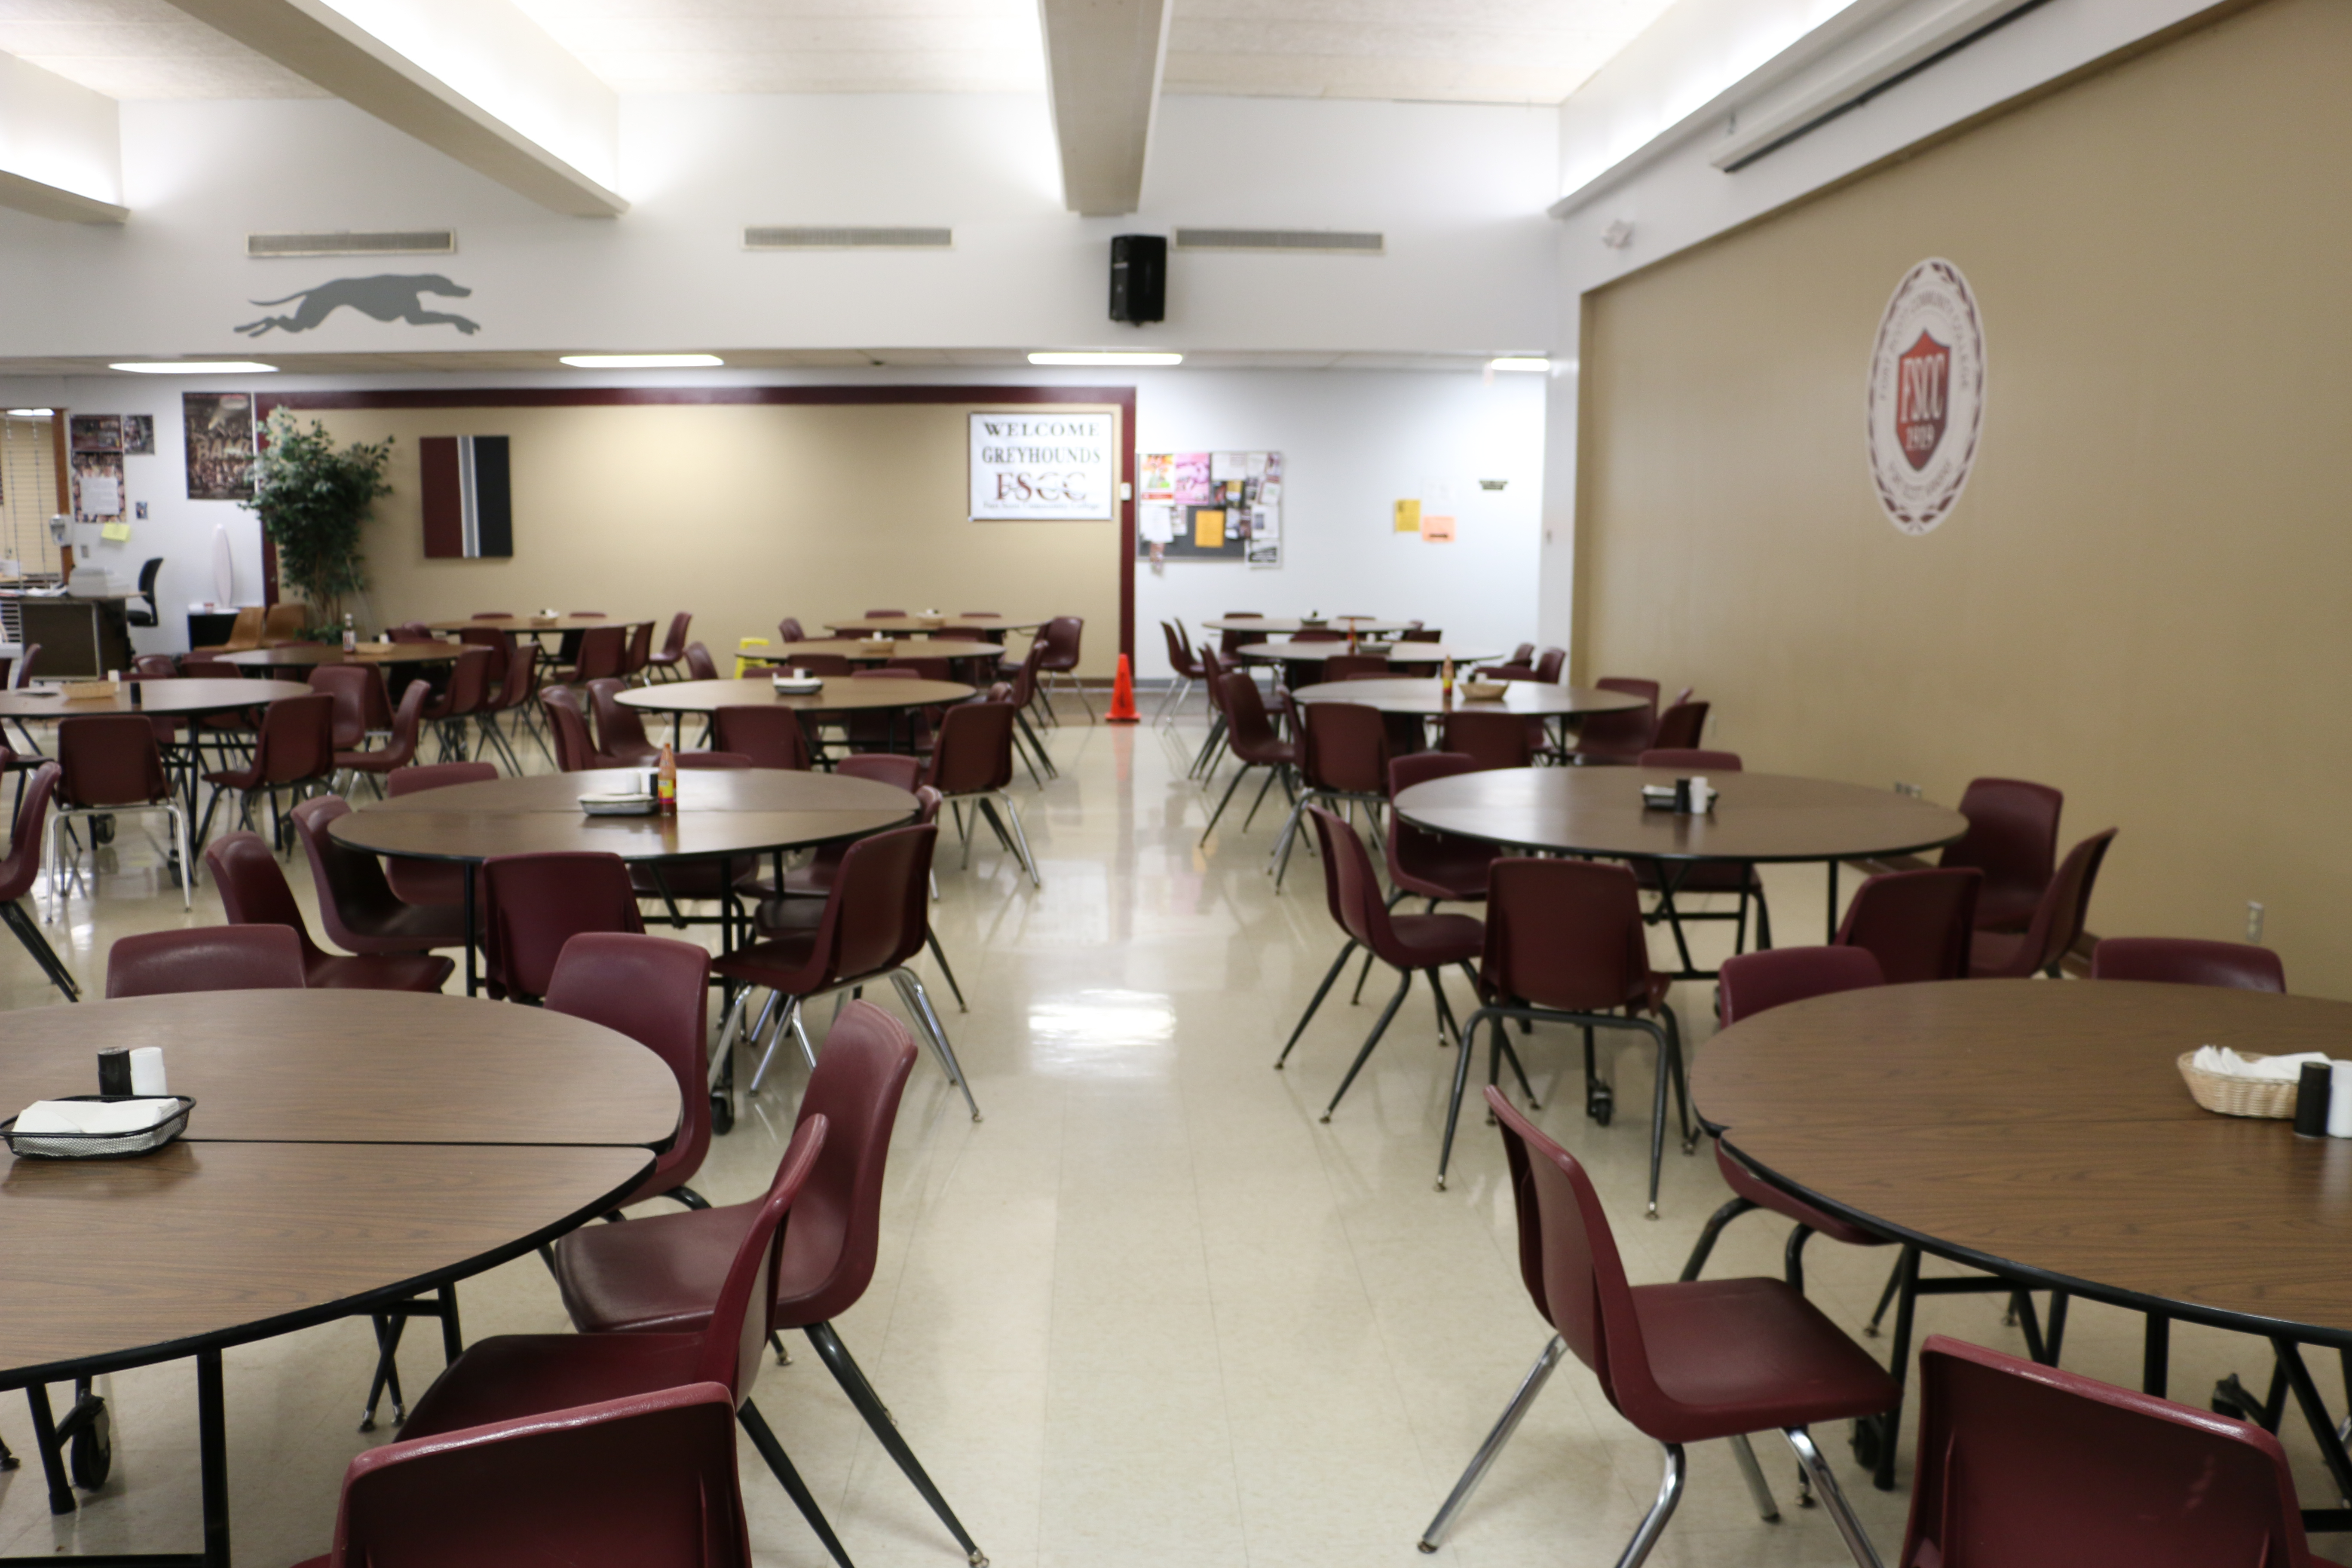 FSCC's cafeteria, with its round tables and maroon plastic chairs all lined up in columns and rows.